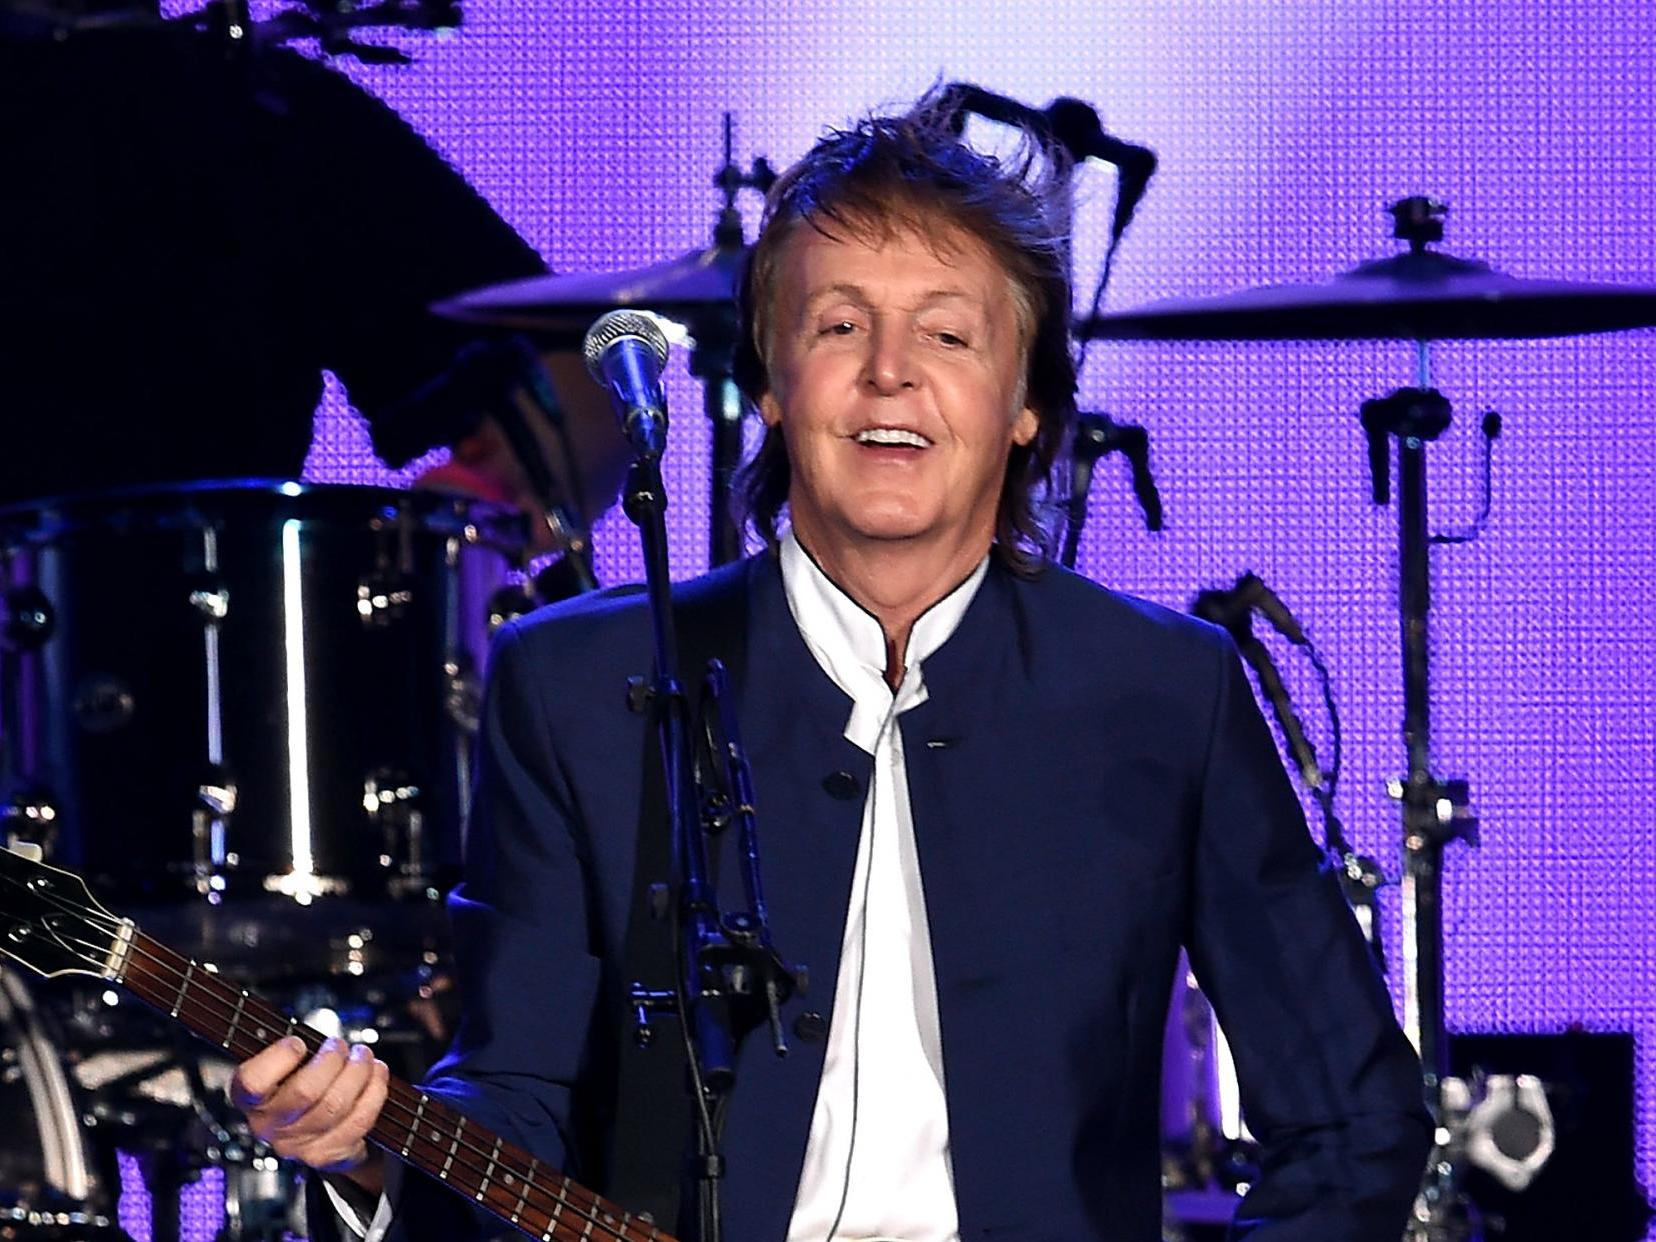 Sir Paul McCartney says Brexit referendum was 'probably a mistake'